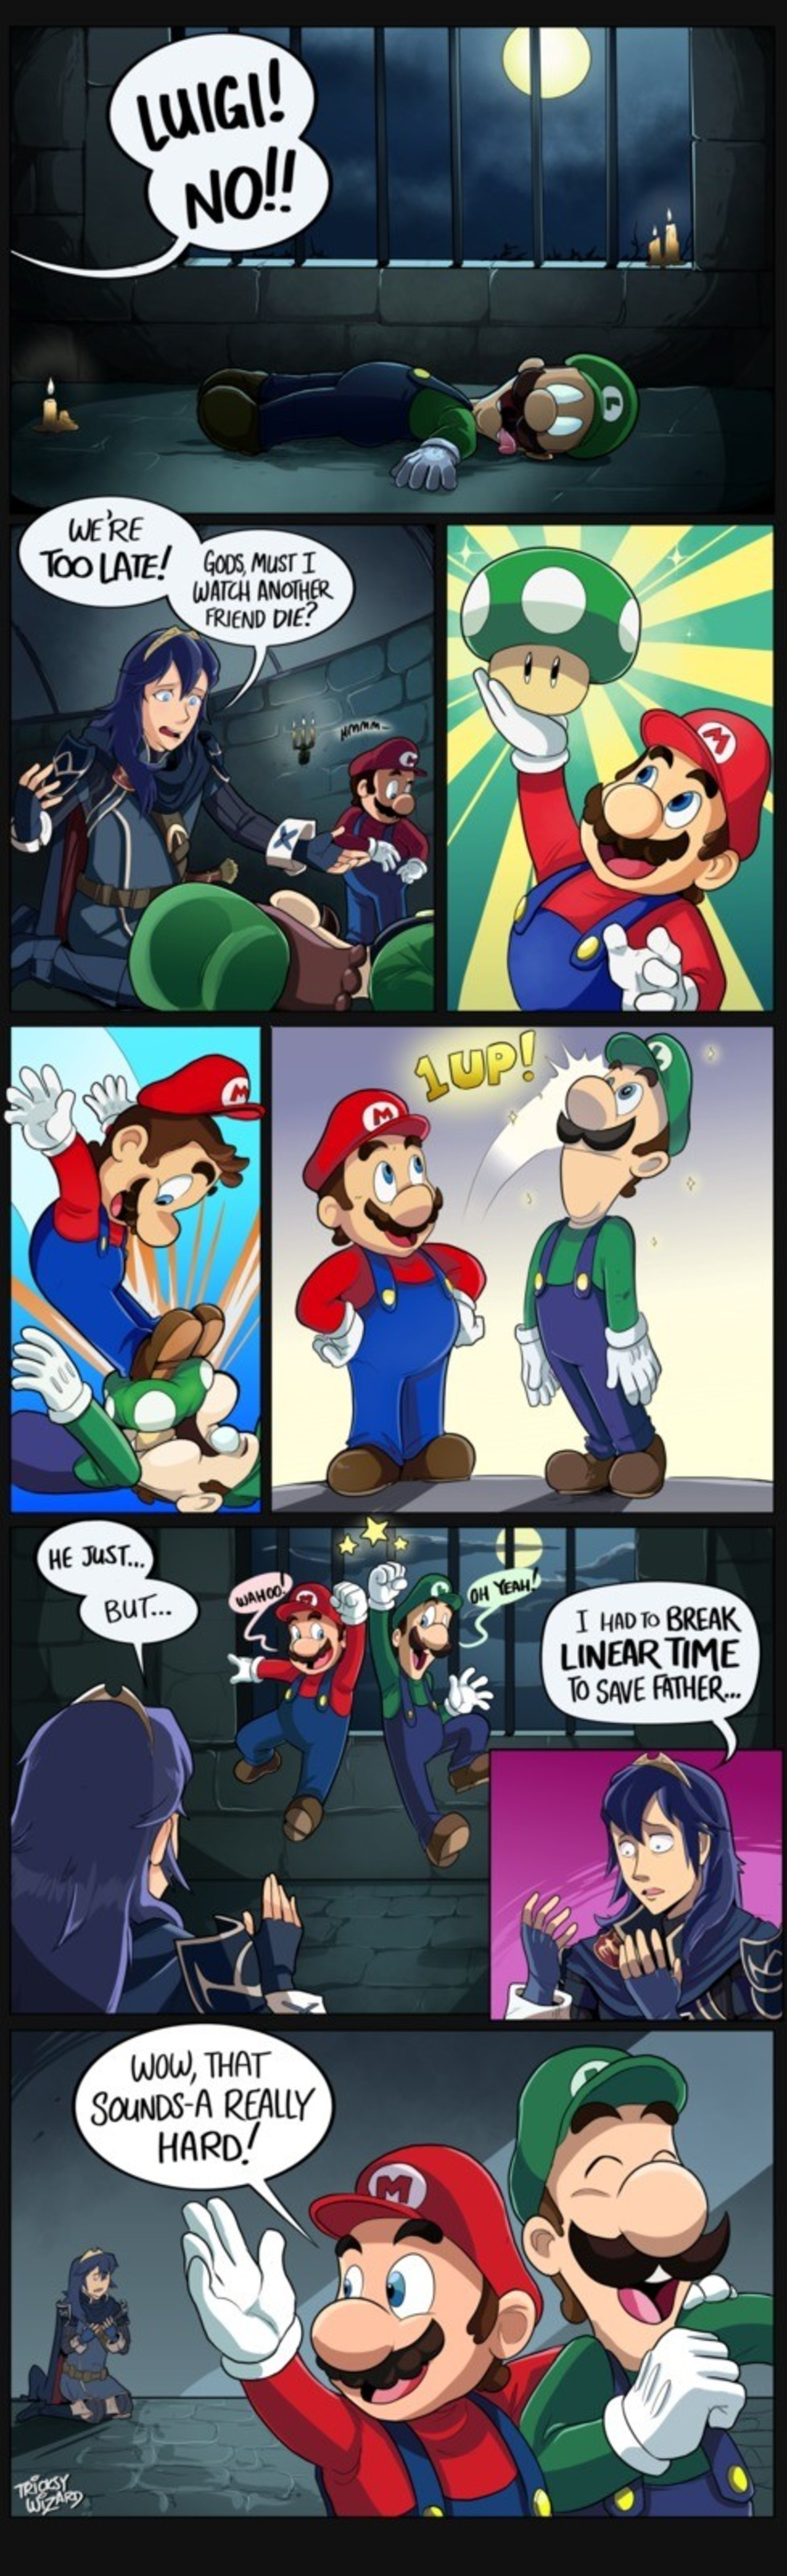 One Up. .. To be fair 1up mushrooms probably only grow normally in the mario universe